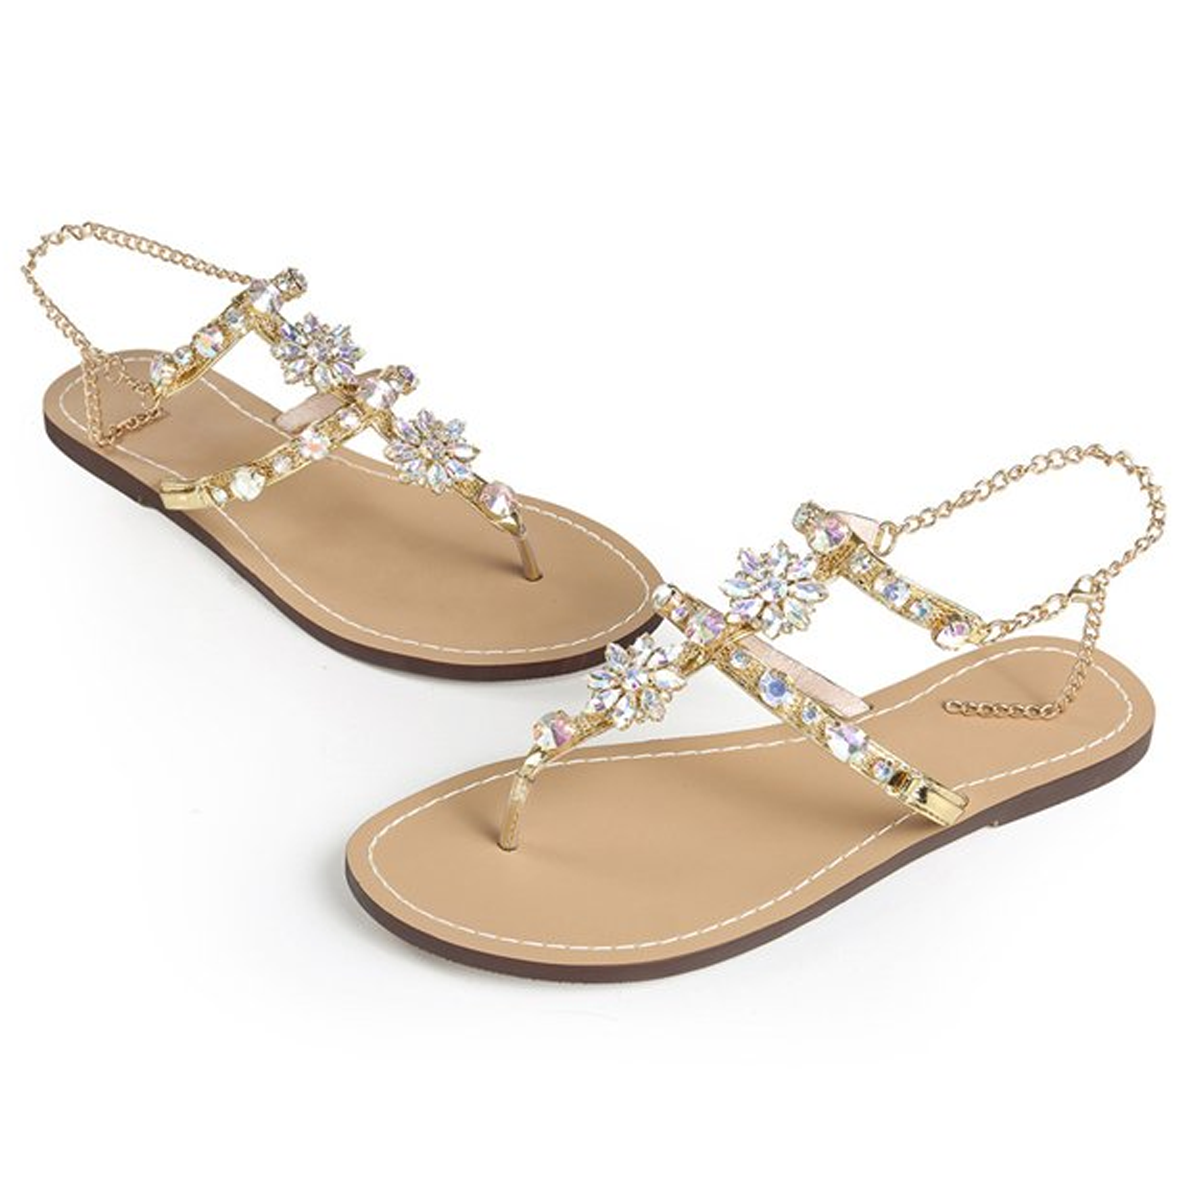 Crystal Chain Flat Bottom Rome Sandals